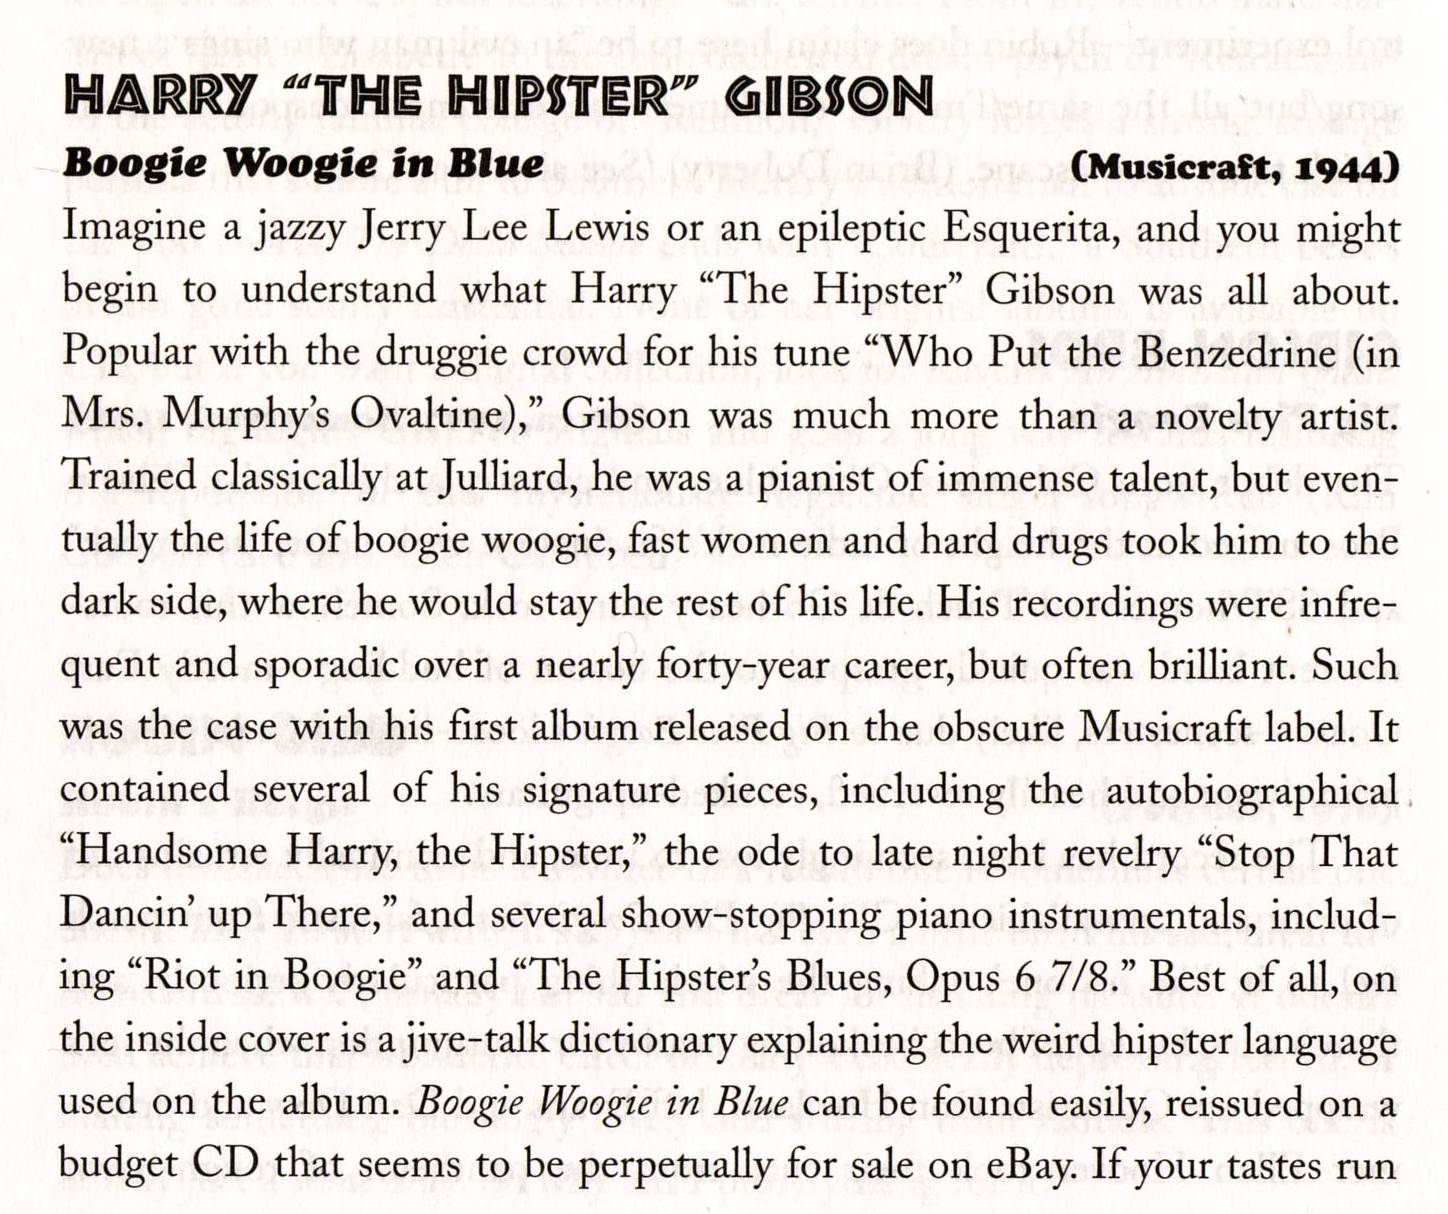 Harry The Hipster Gibson